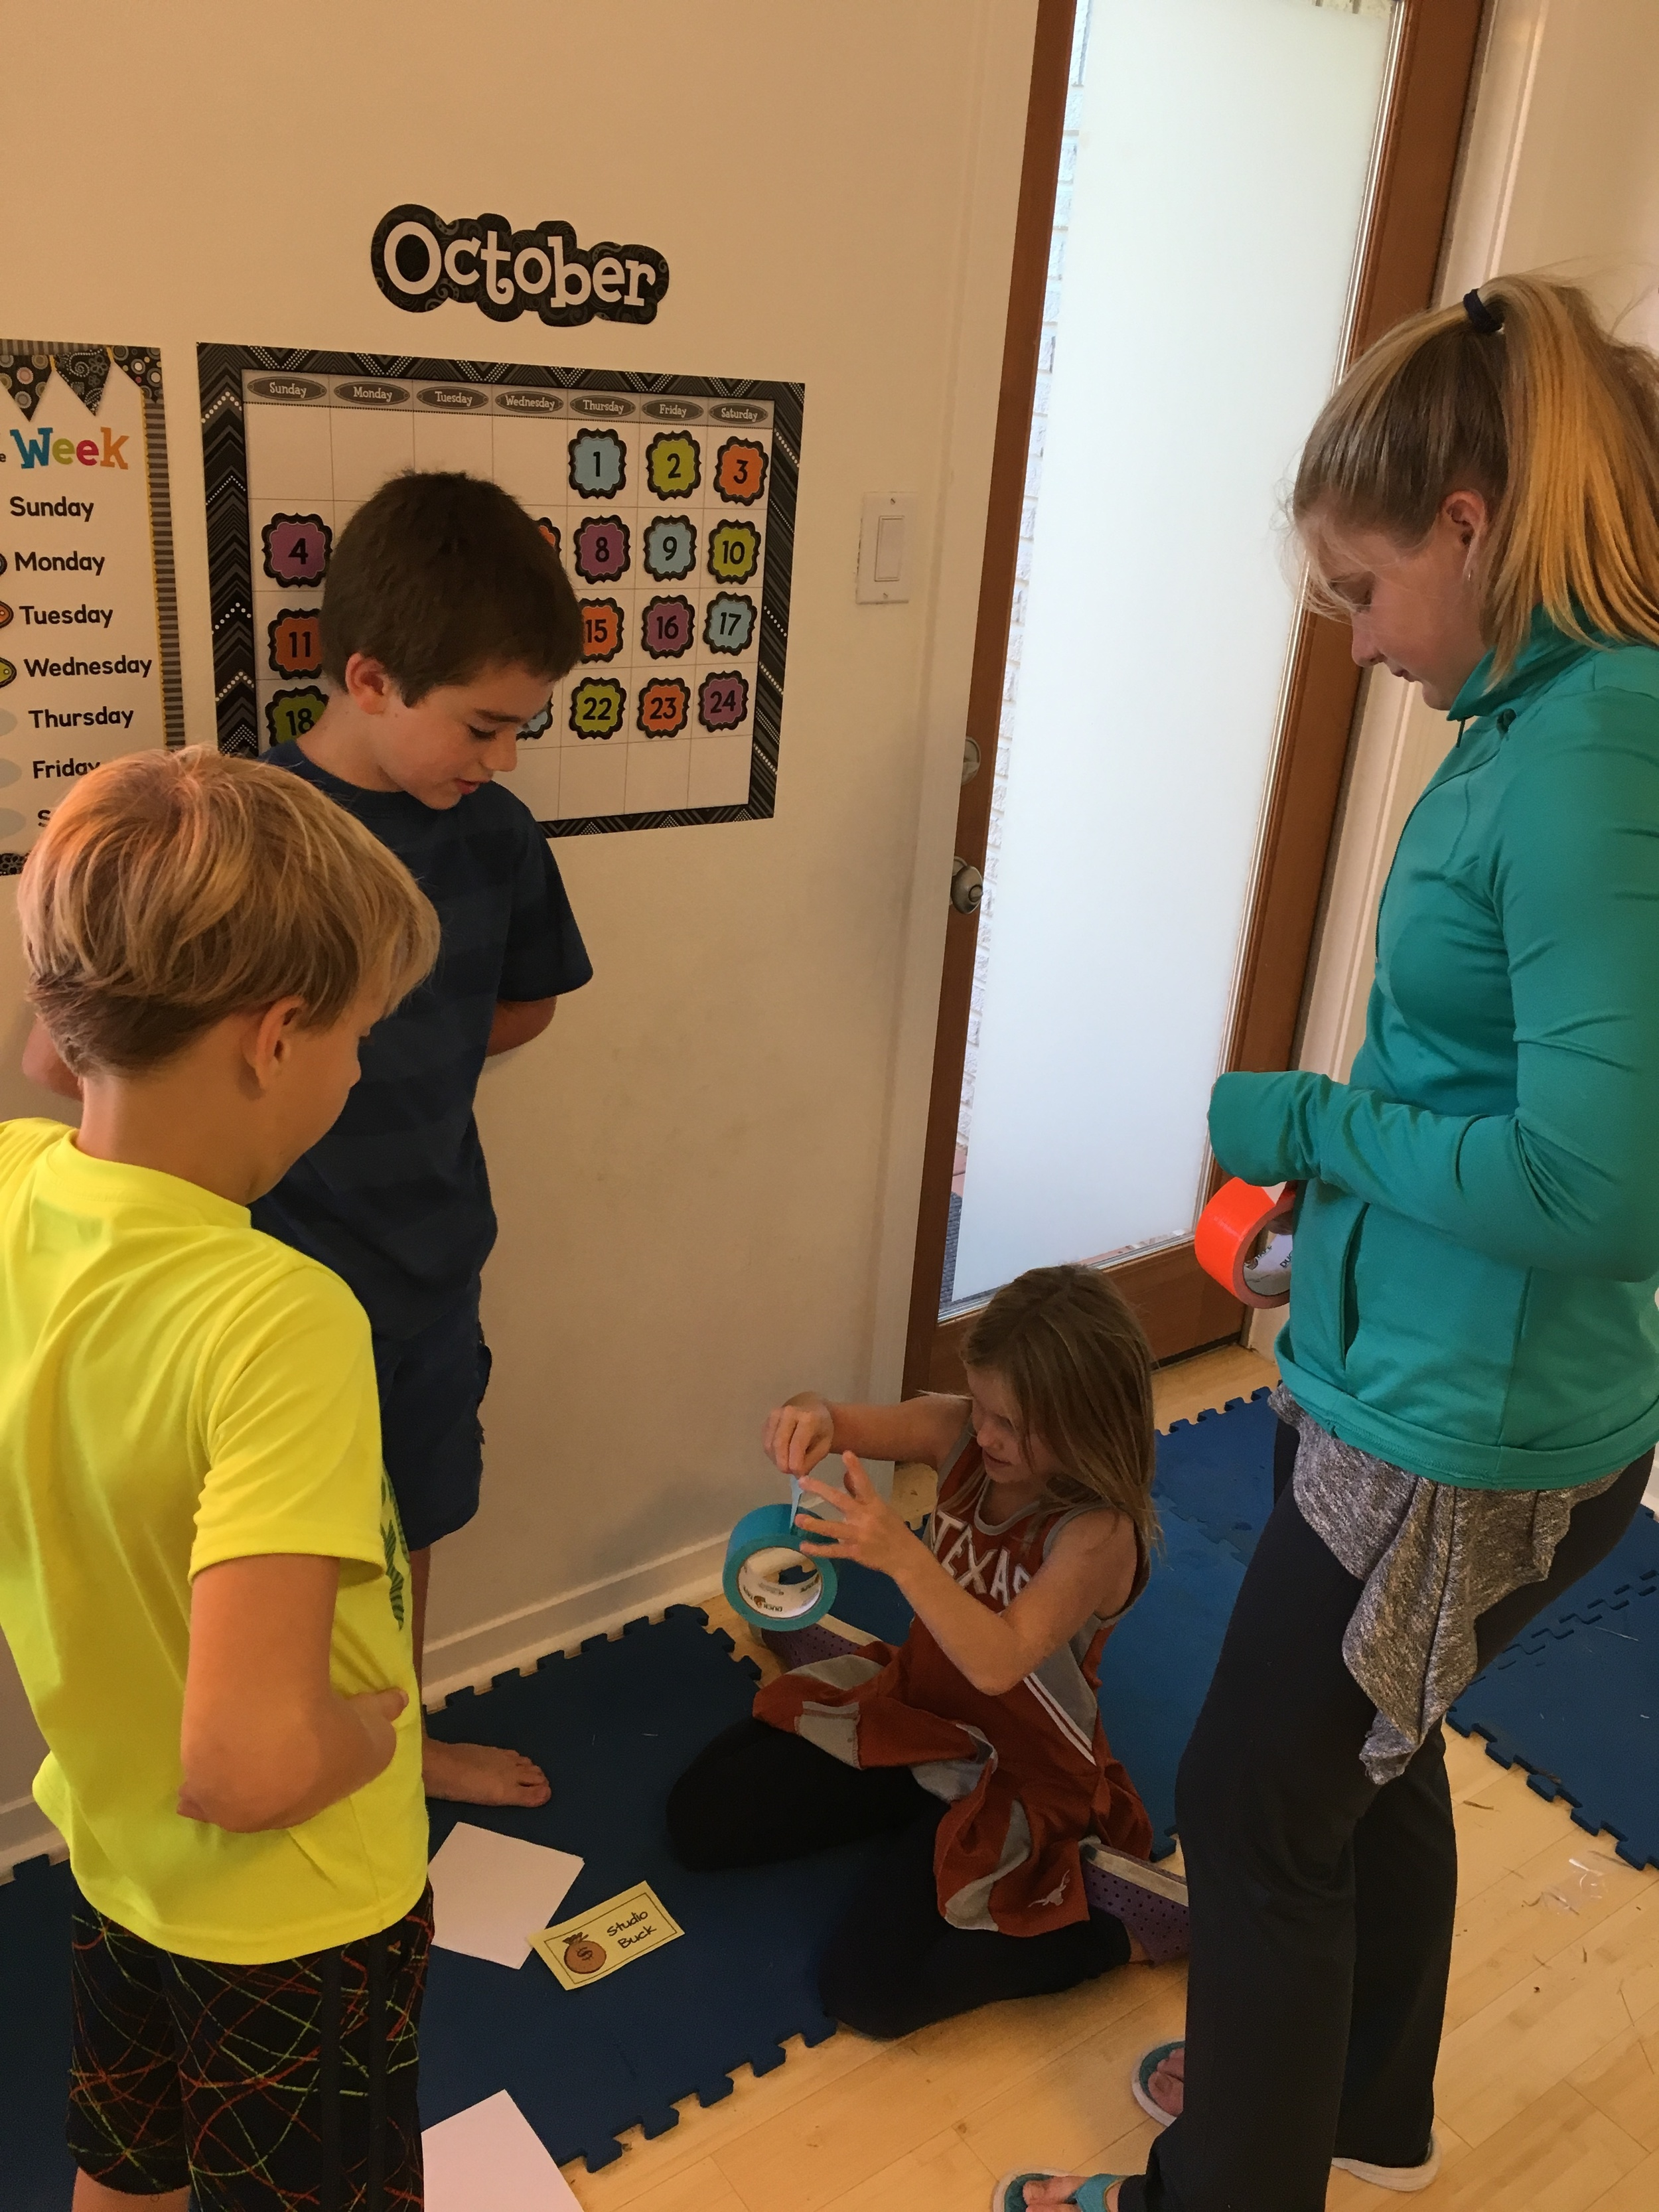 MAKING THEIR DUCT TAPE WALLETS TO COLLET PROFITS!